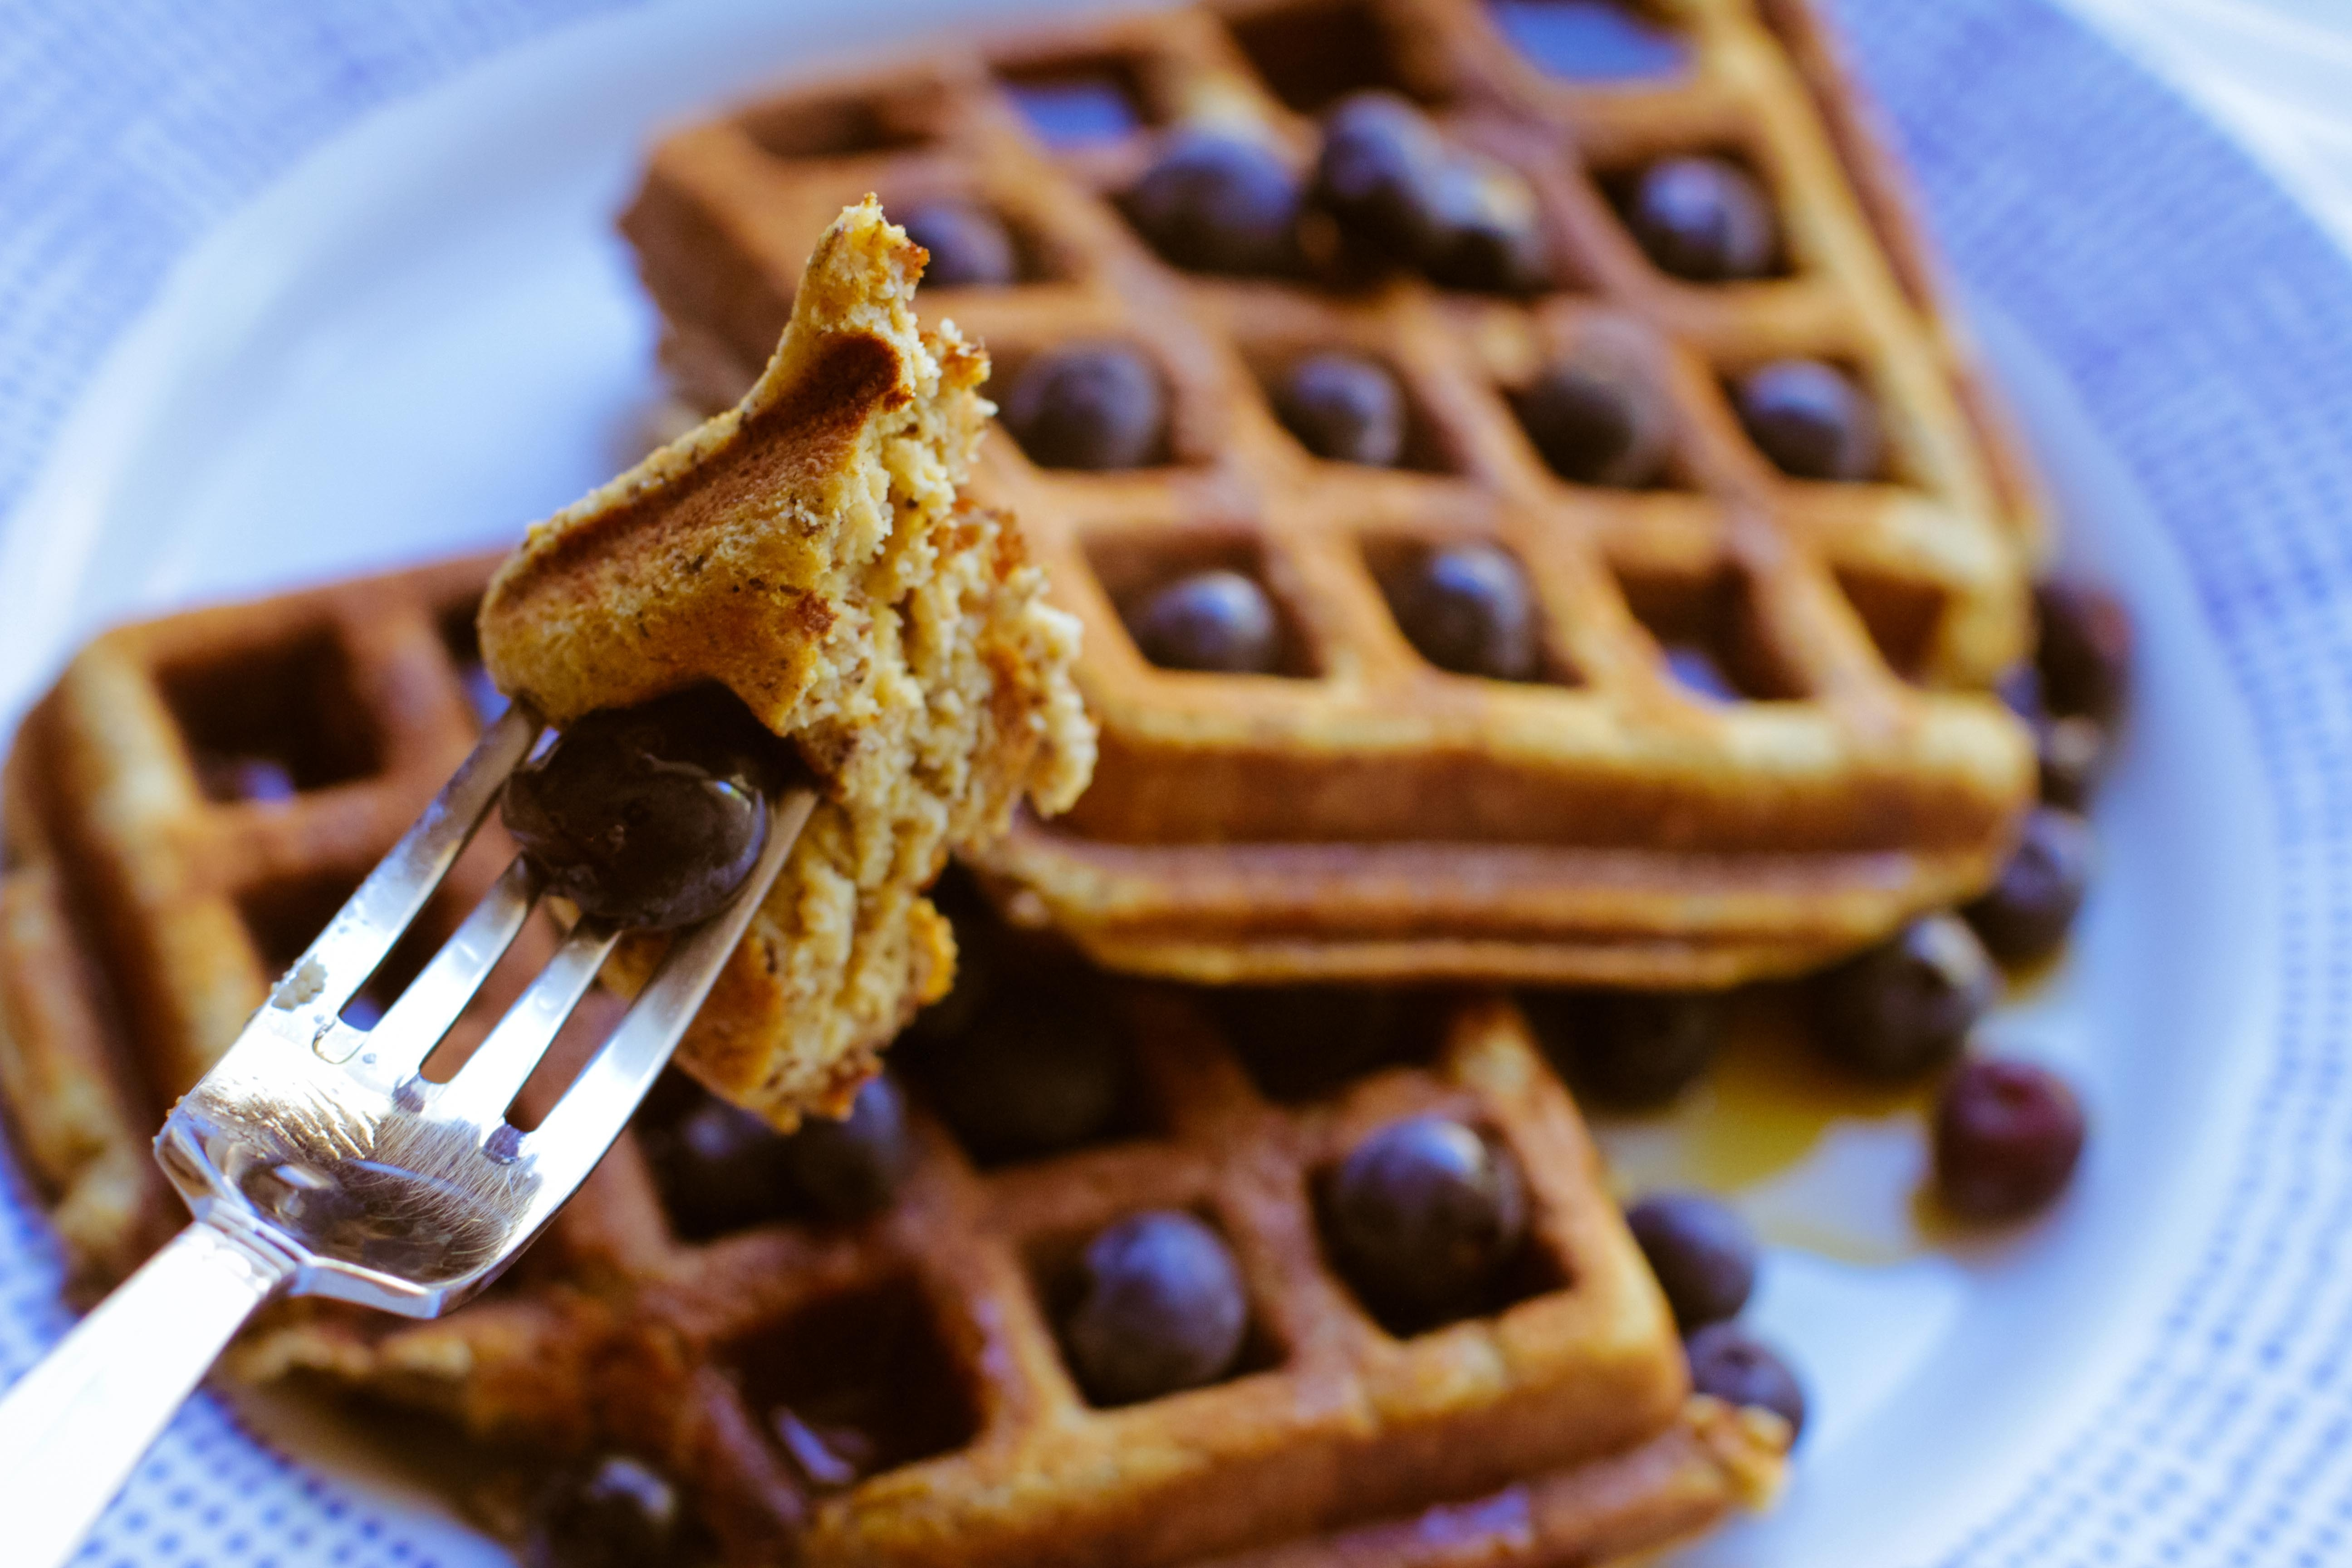 Paleo Banana Waffles from Cupcakes to Crossfit - Rubies & Radishes